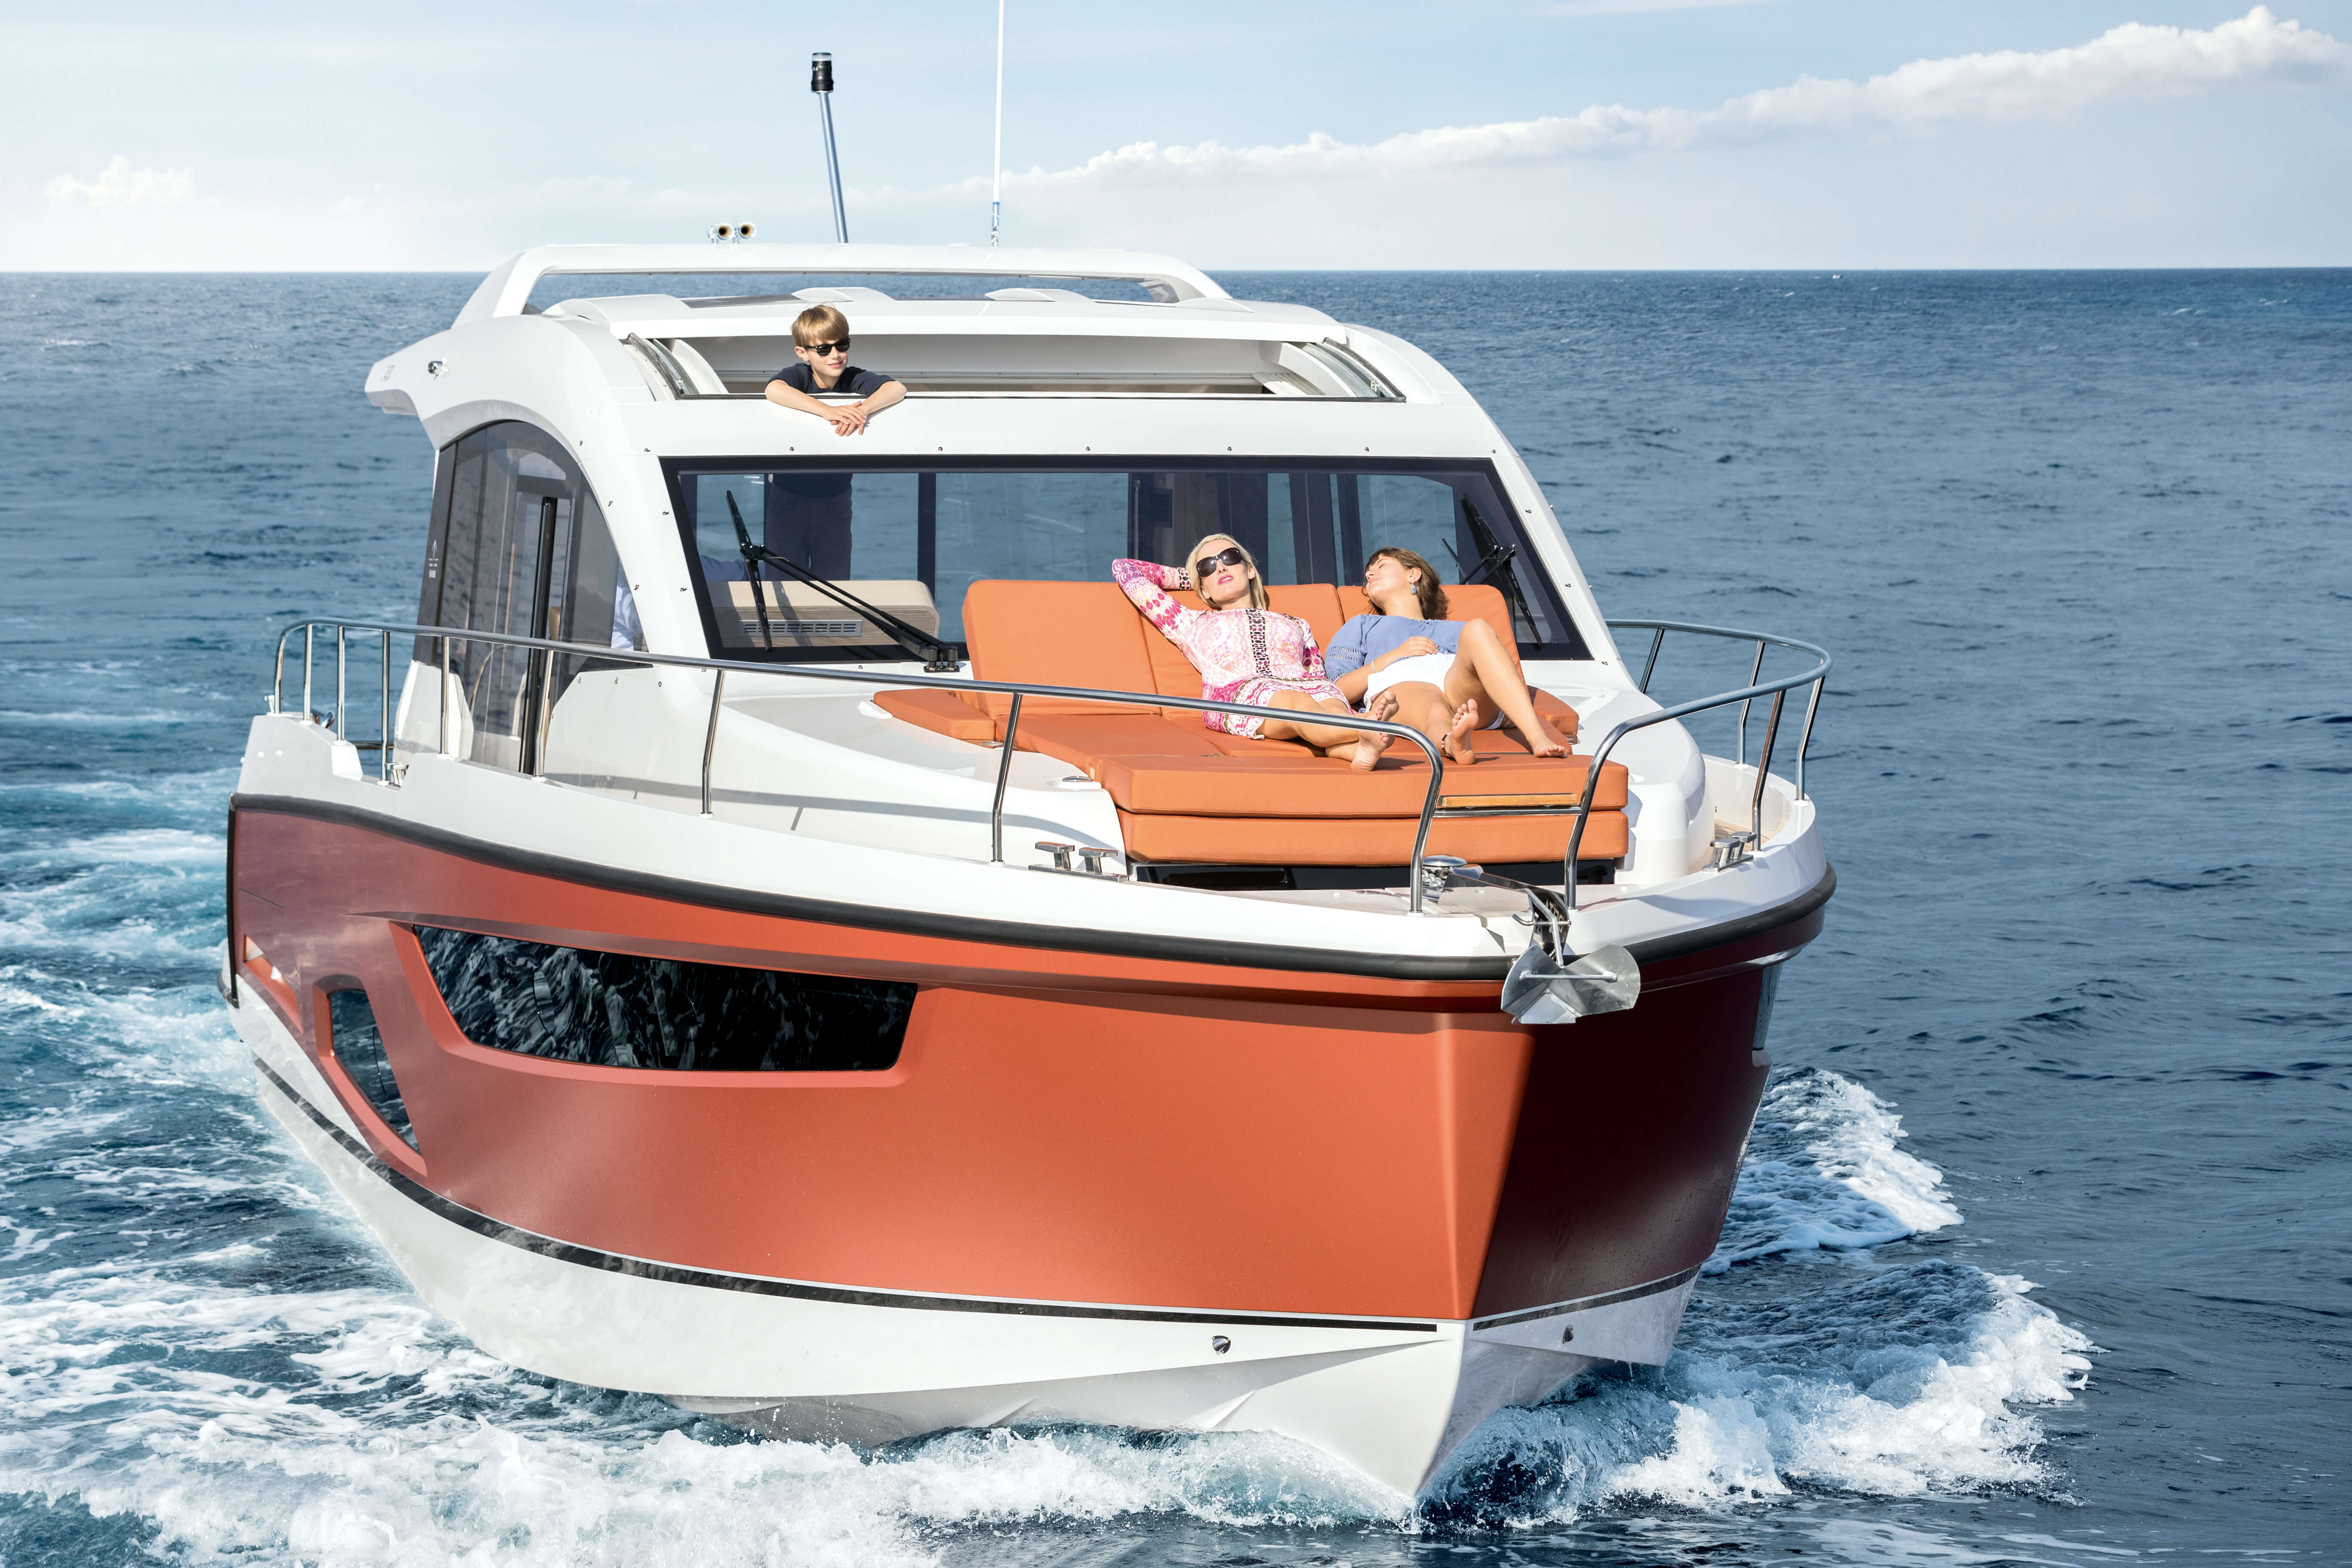 Sealine C430 deck | On the Sealine C430, you are spoilt for choice how and where to spend every precious moment. | Sealine